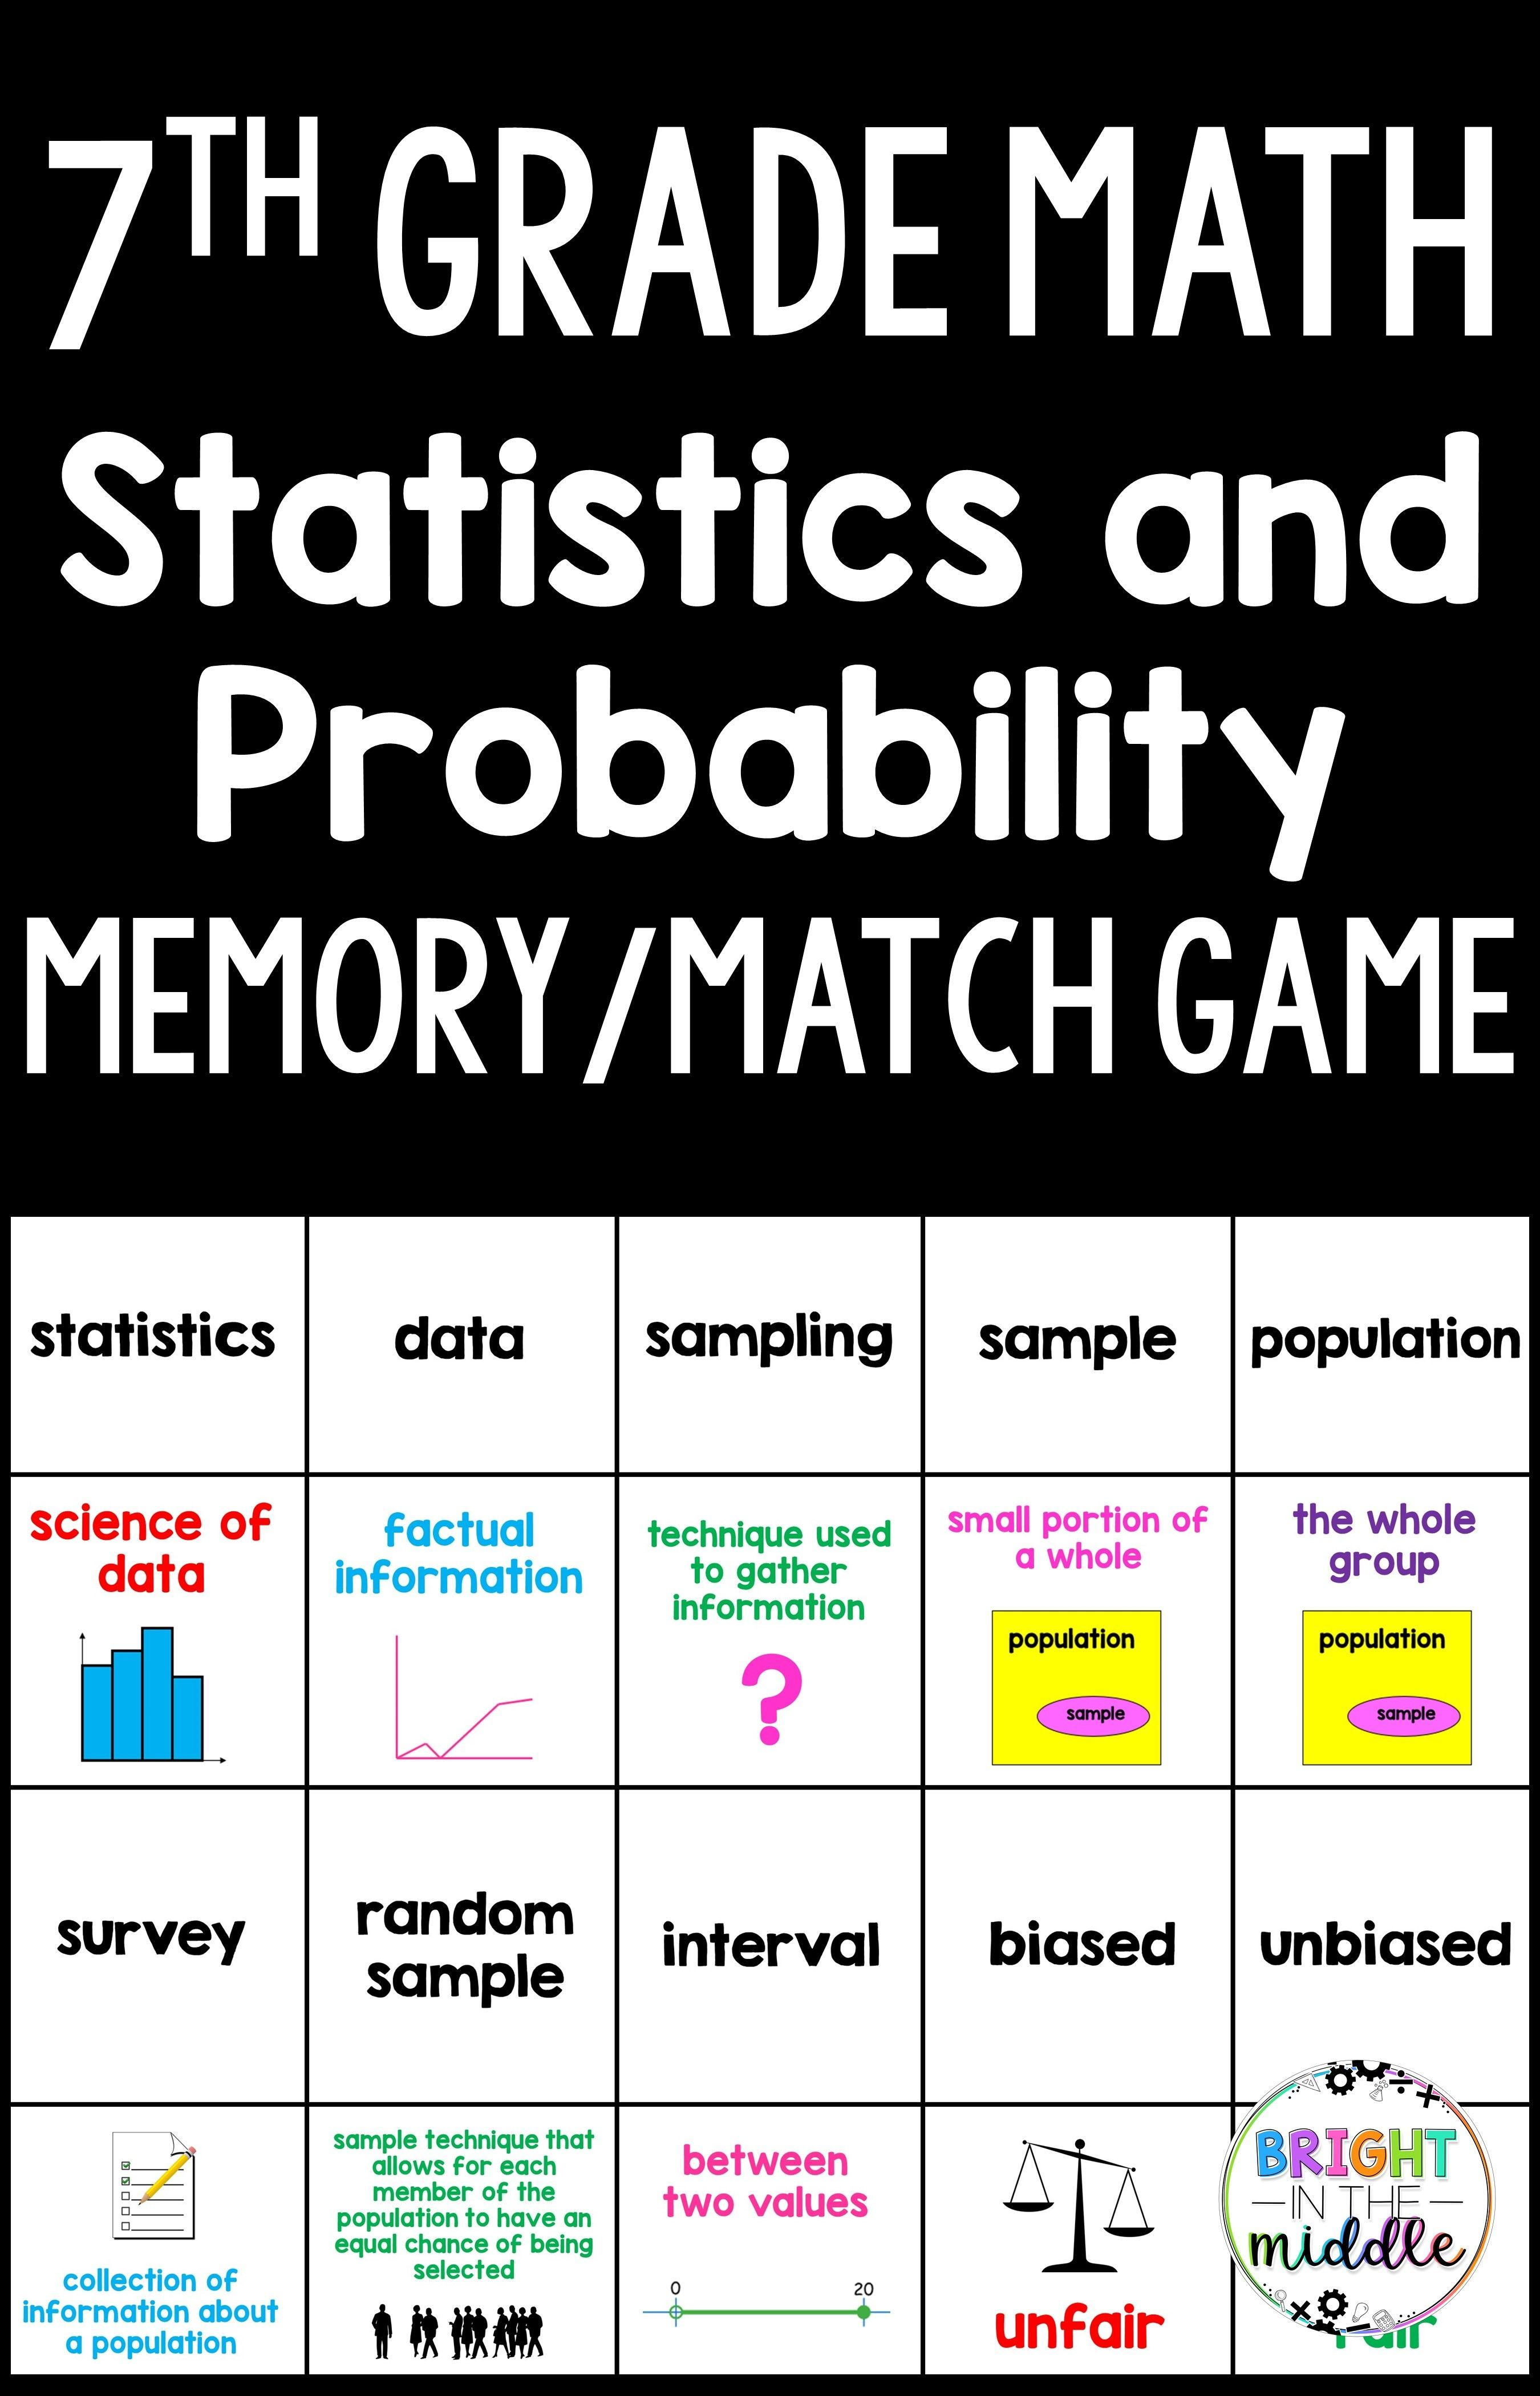 Probability Worksheets 7th Grade Math   Printable Worksheets and Activities  for Teachers [ 4200 x 2700 Pixel ]